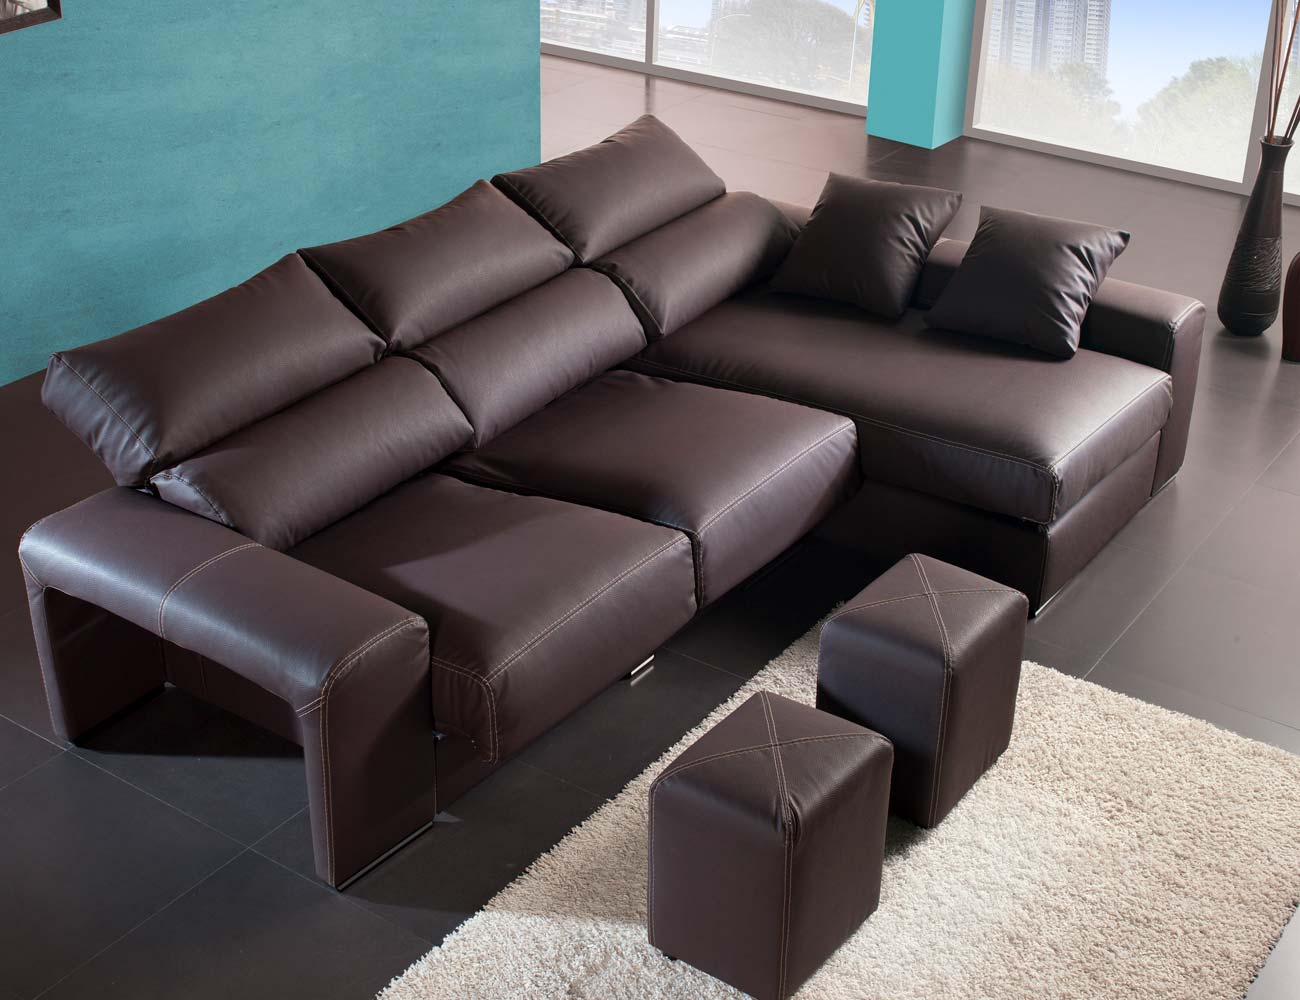 Sofa chaiselongue moderno polipiel chocolate poufs taburetes57